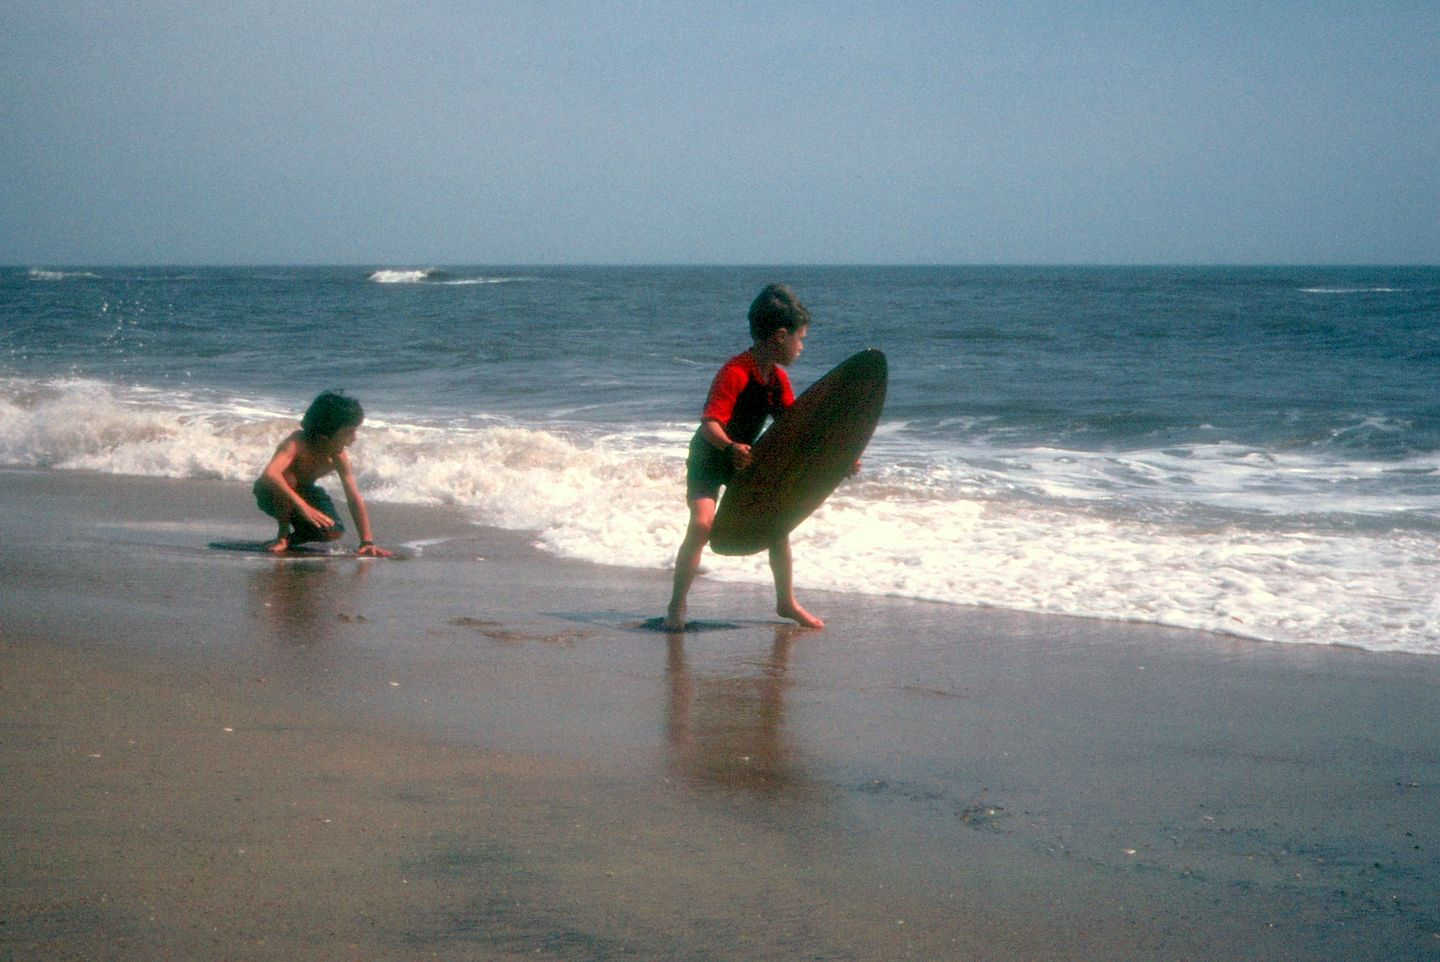 Determined skimboarders